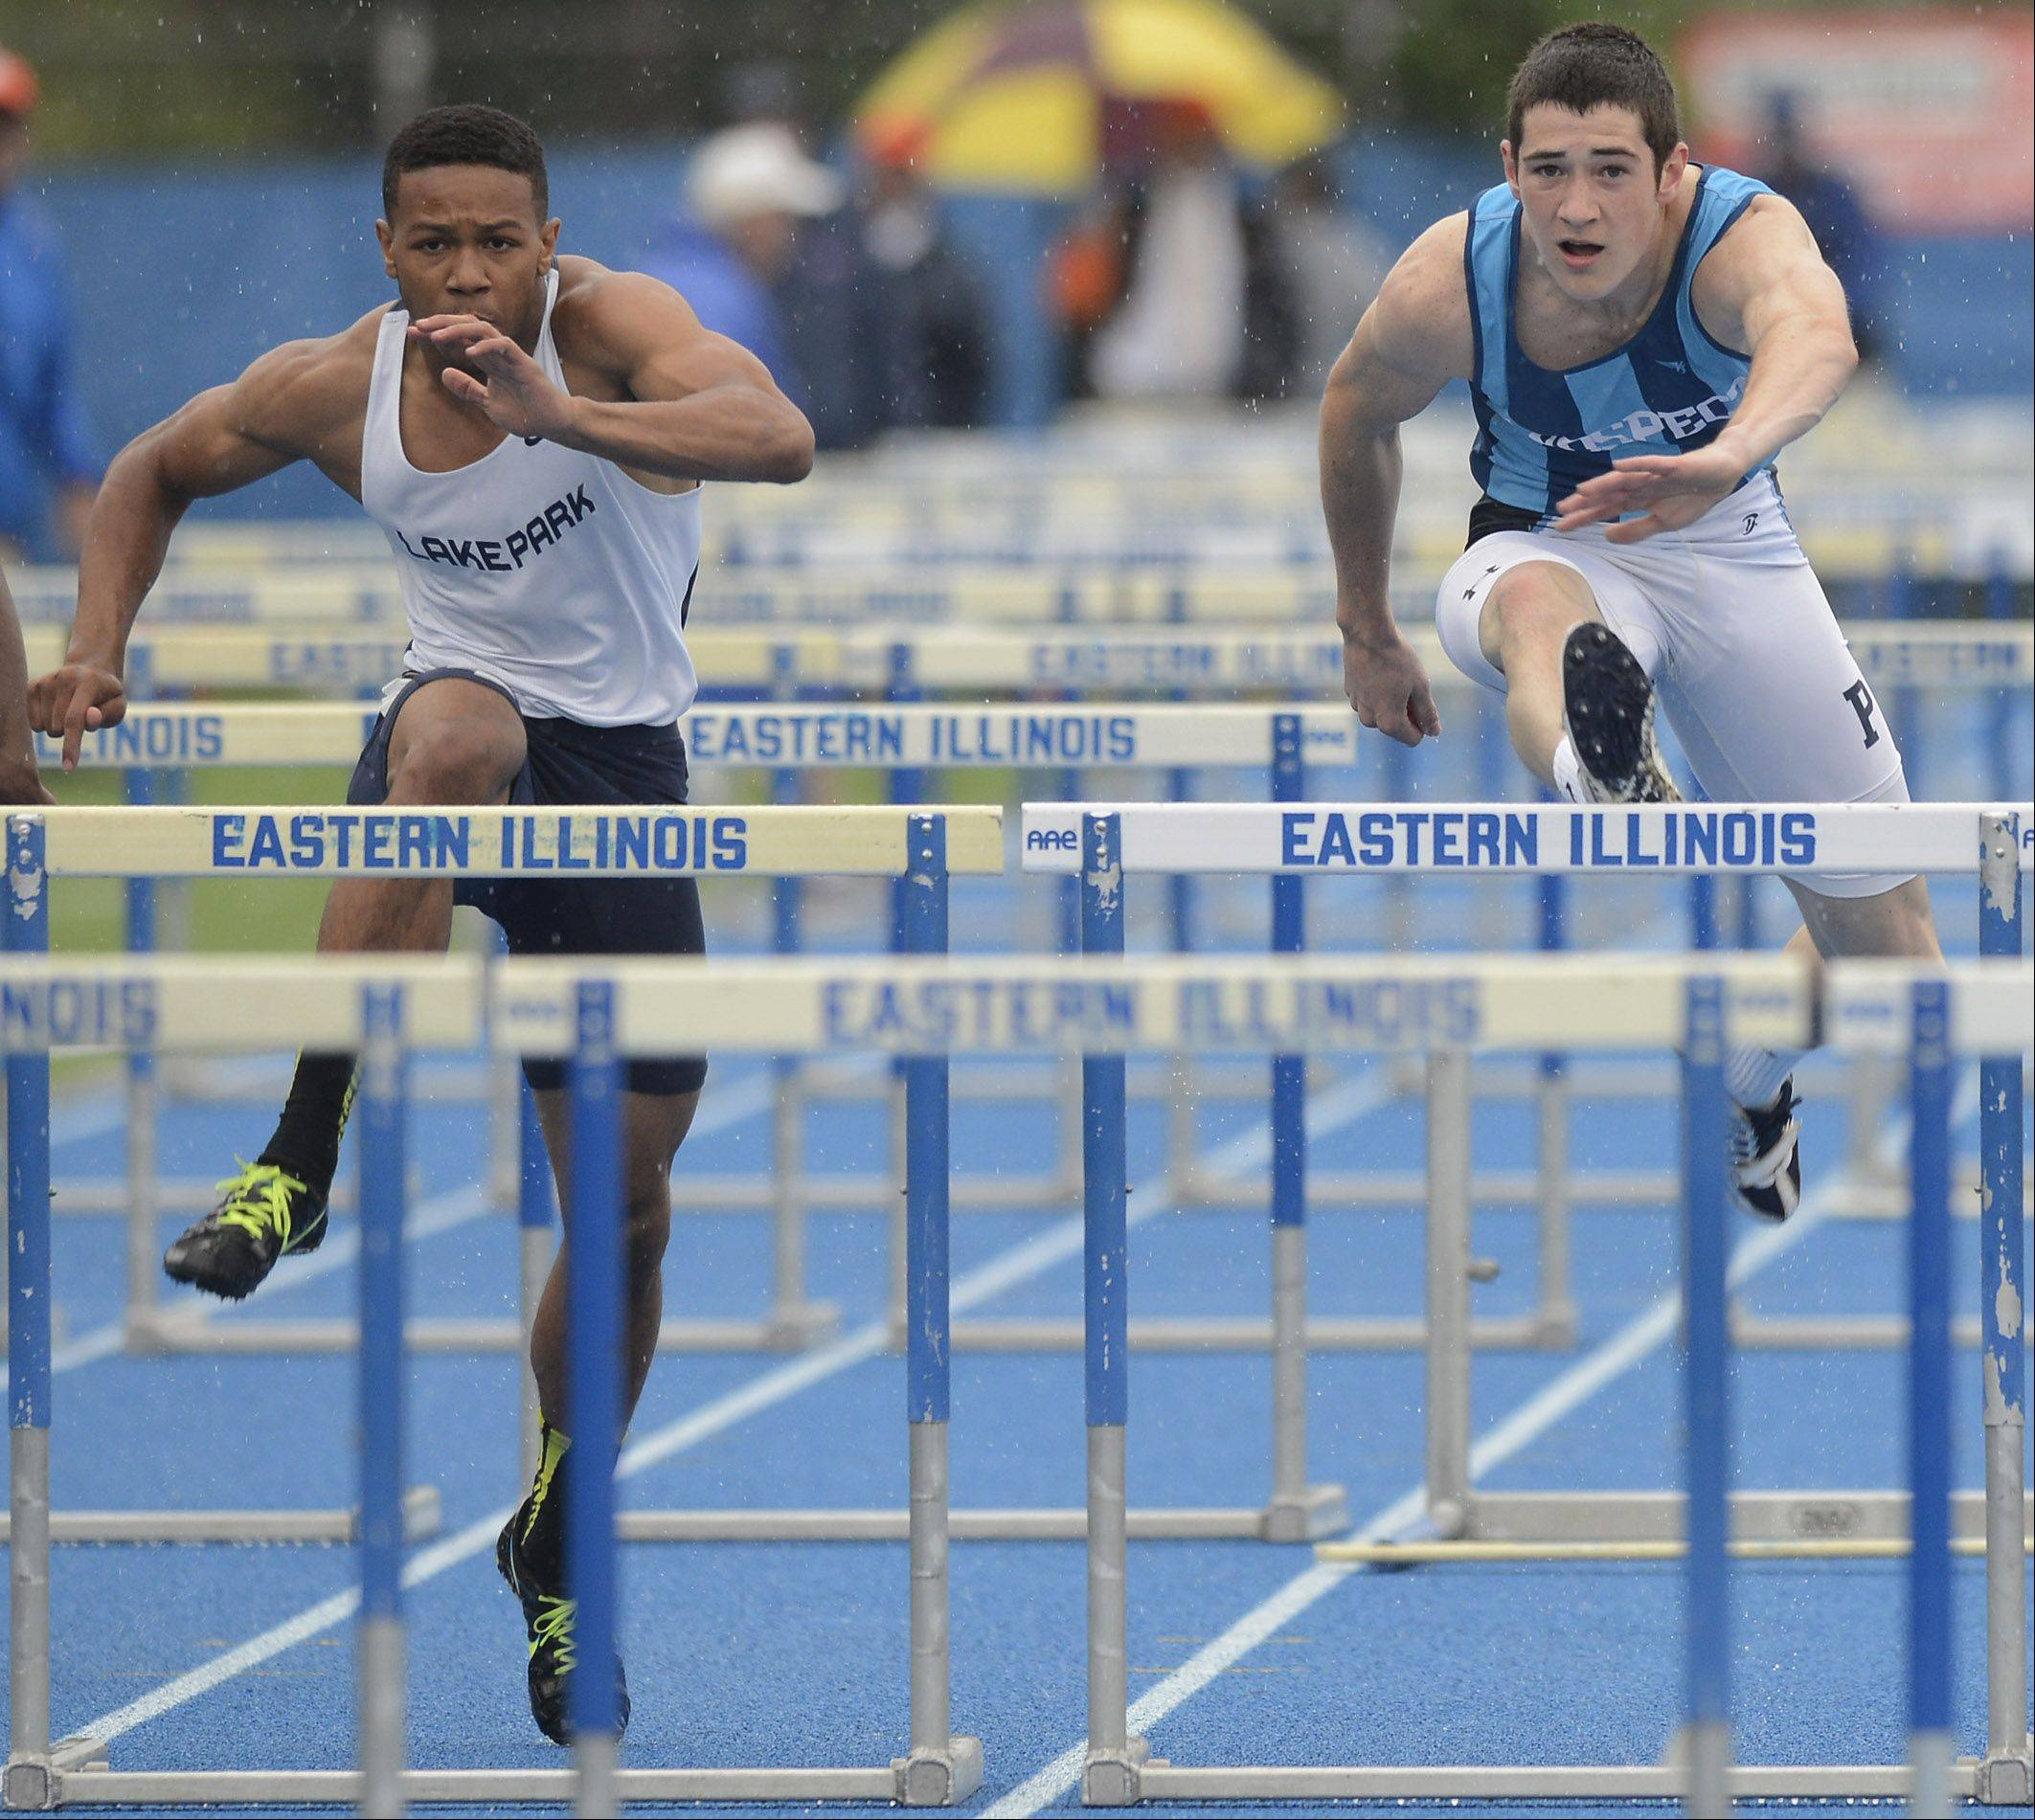 Lake Park's Antonio Shenault, left, and Prospect's Dave Kendziera compete in the Class 3A 110-meter high hurdles during the boys state track finals in Charleston Saturday.